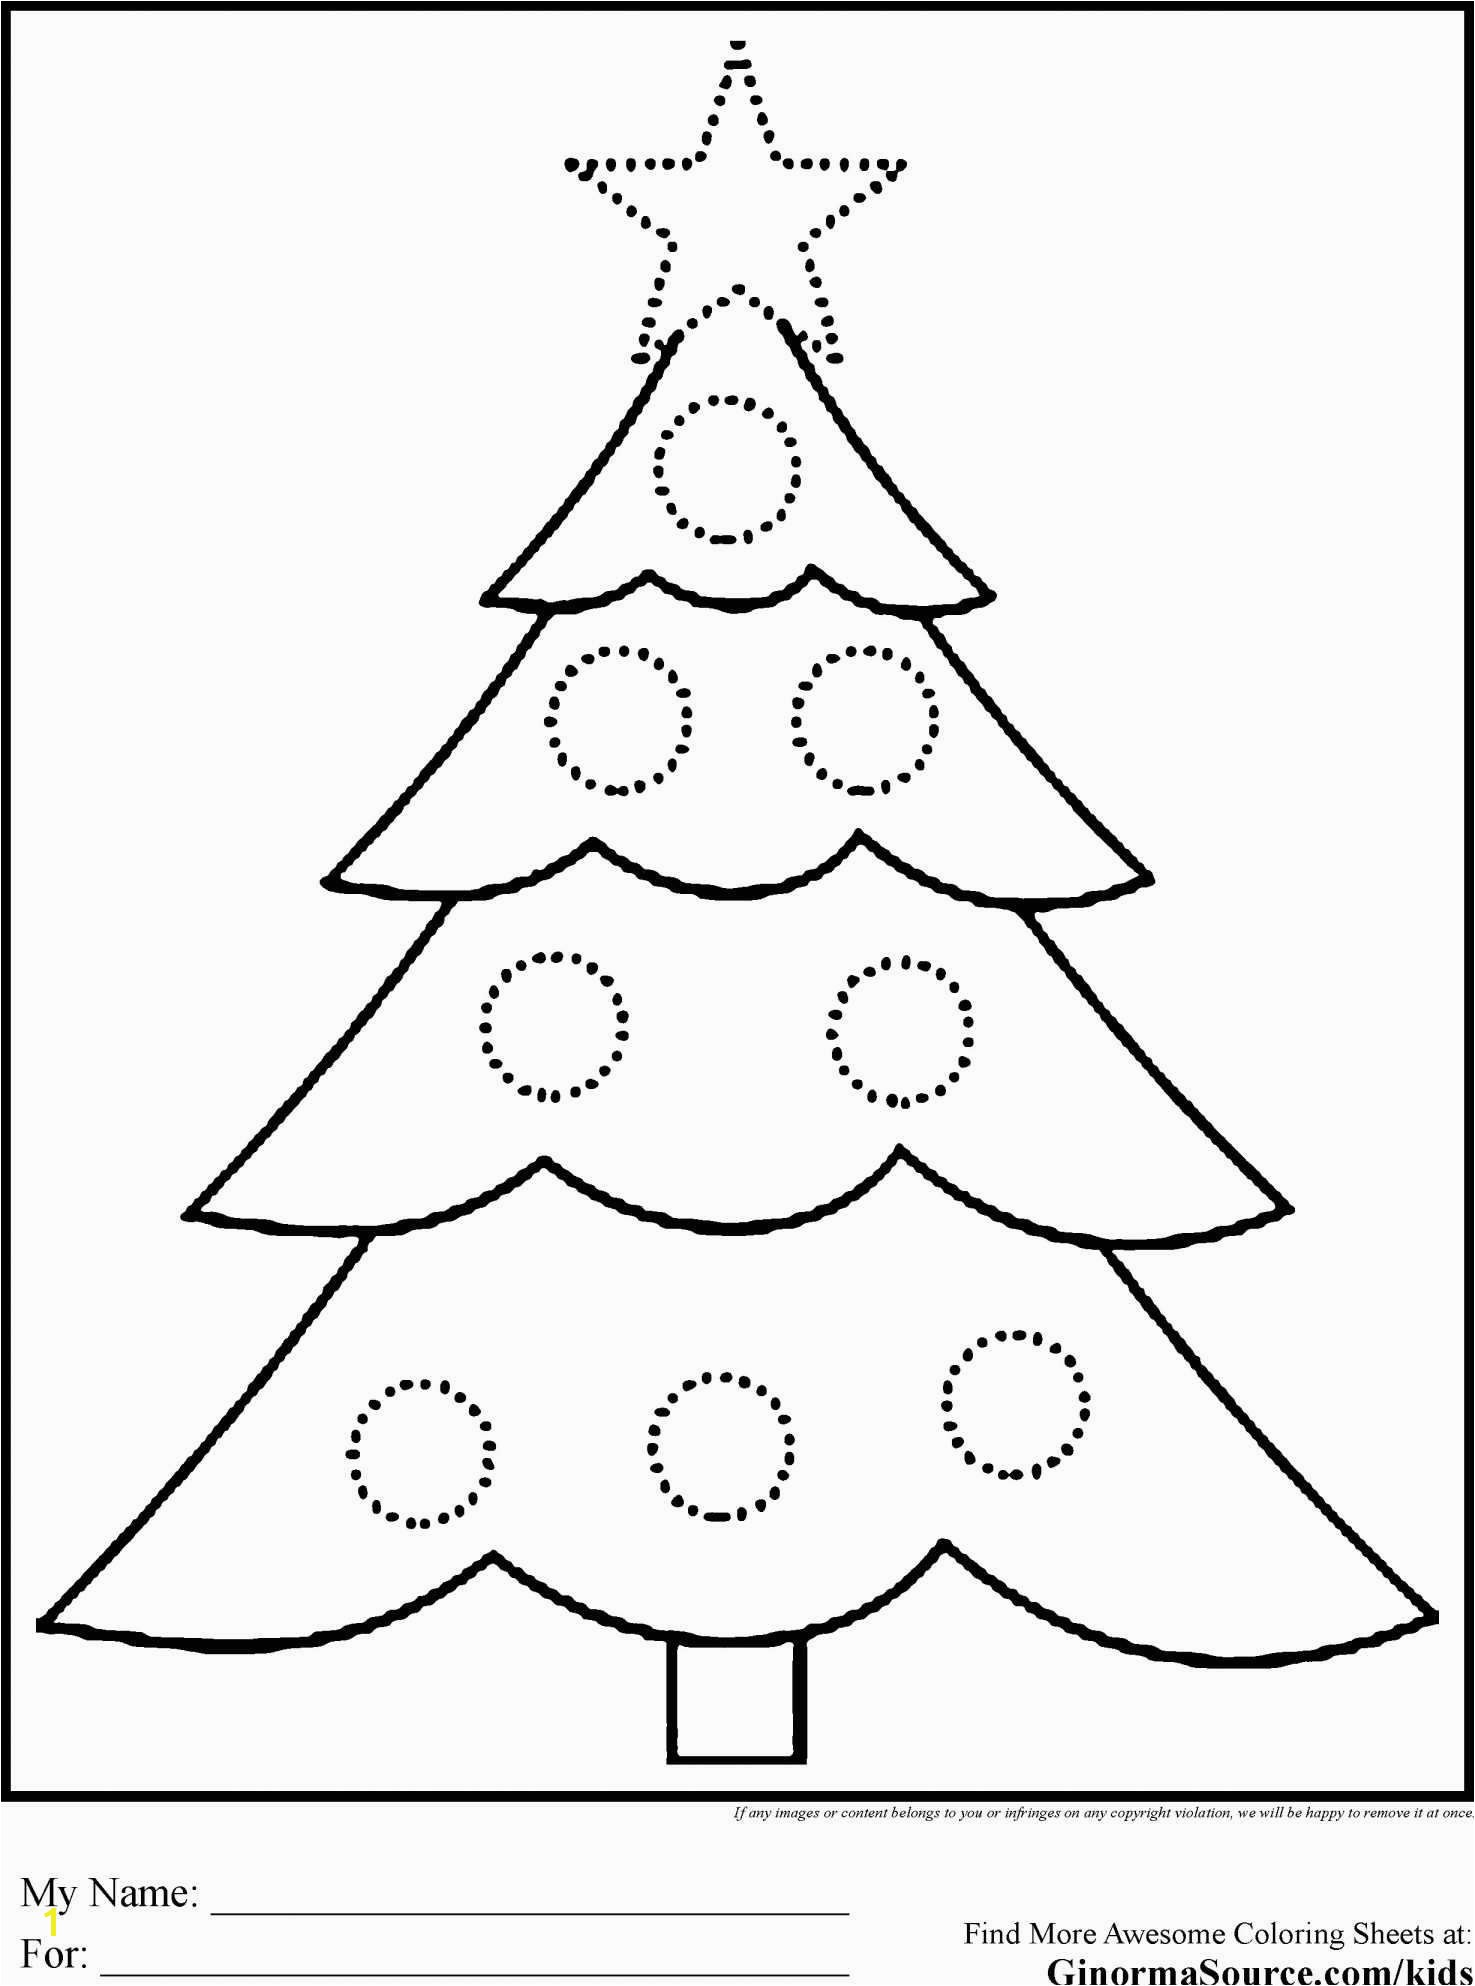 Christmas Tree Color Pages Tree Coloring Pages Free Christmas Tree